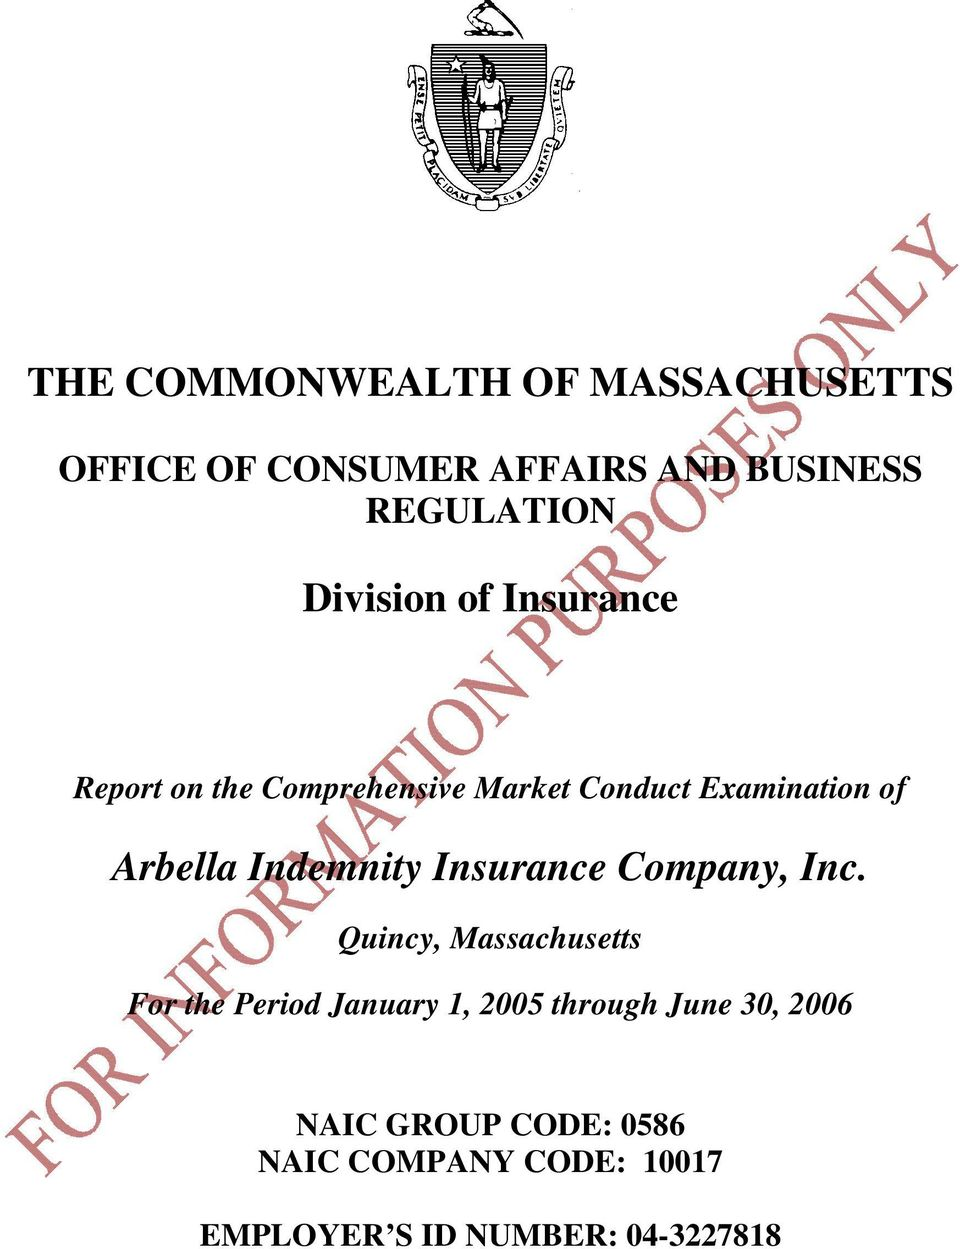 Indemnity Insurance Company, Inc.